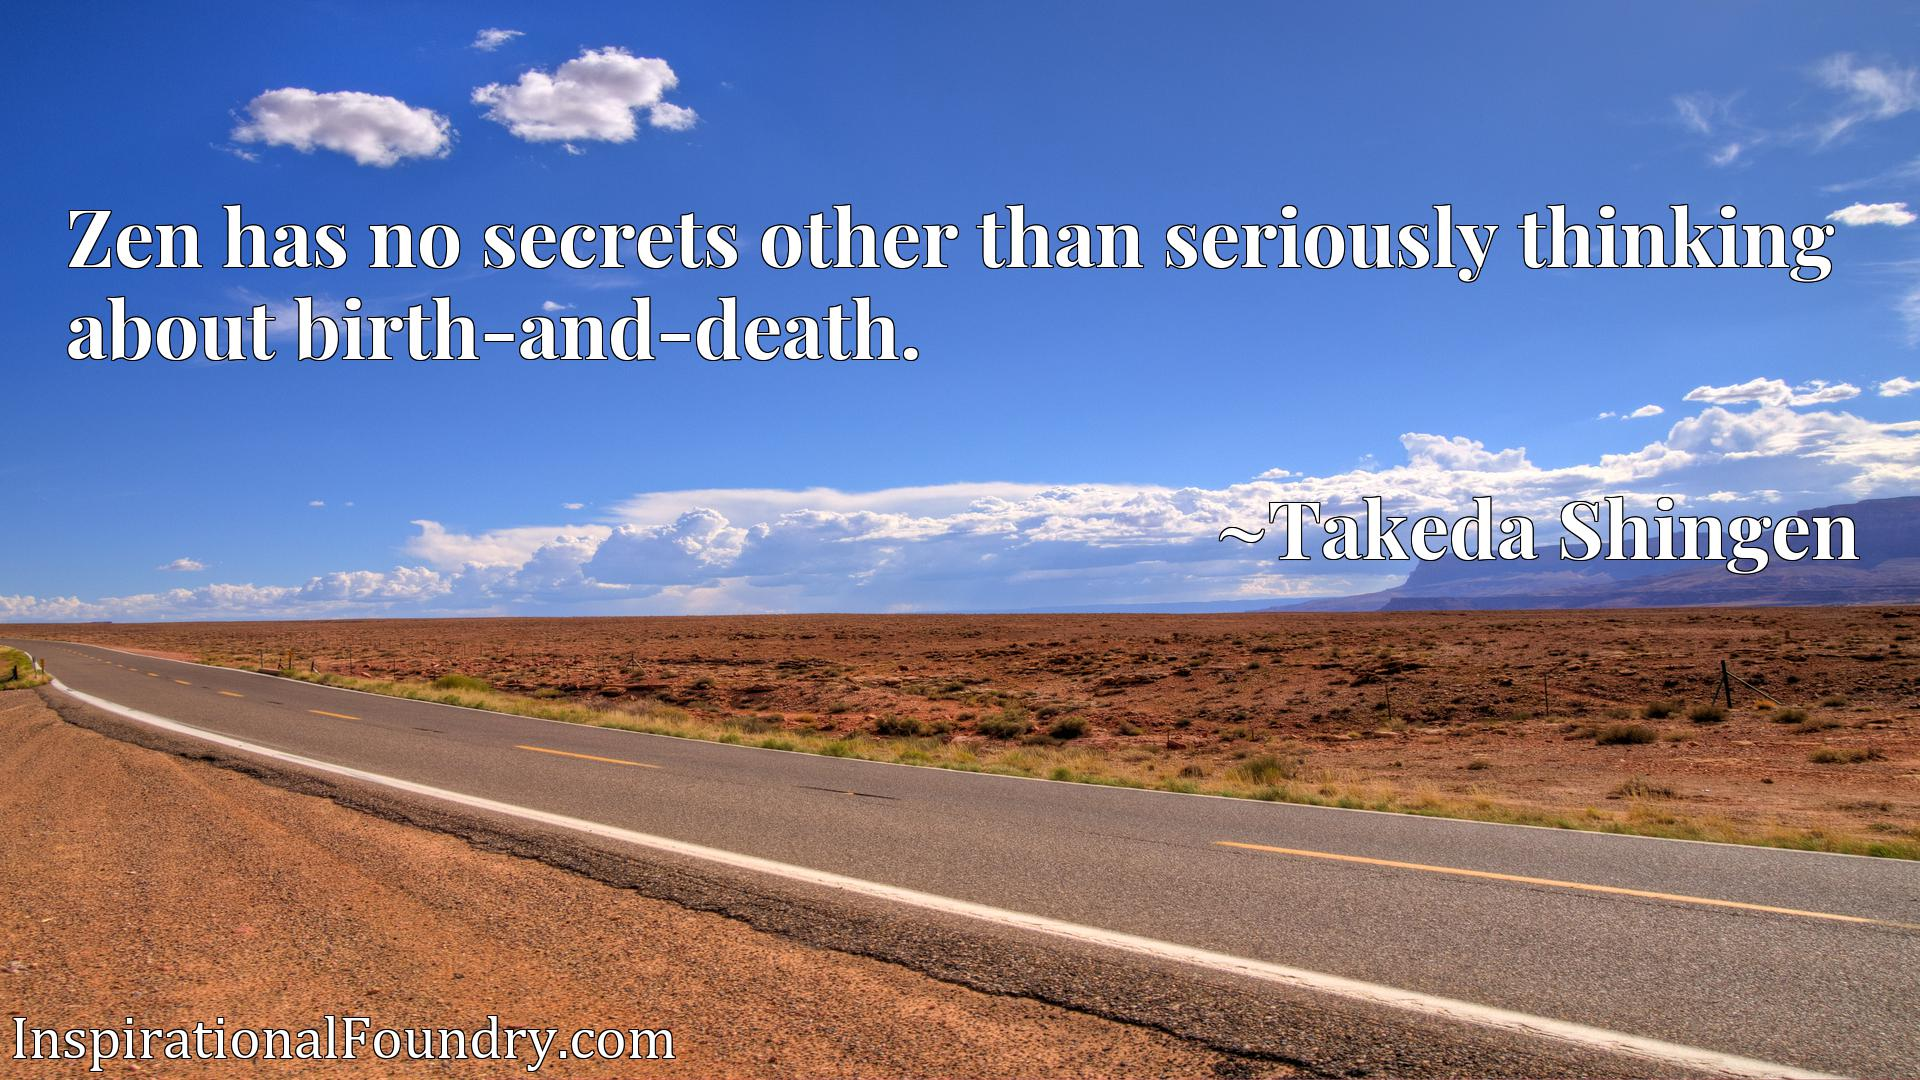 Zen has no secrets other than seriously thinking about birth-and-death.